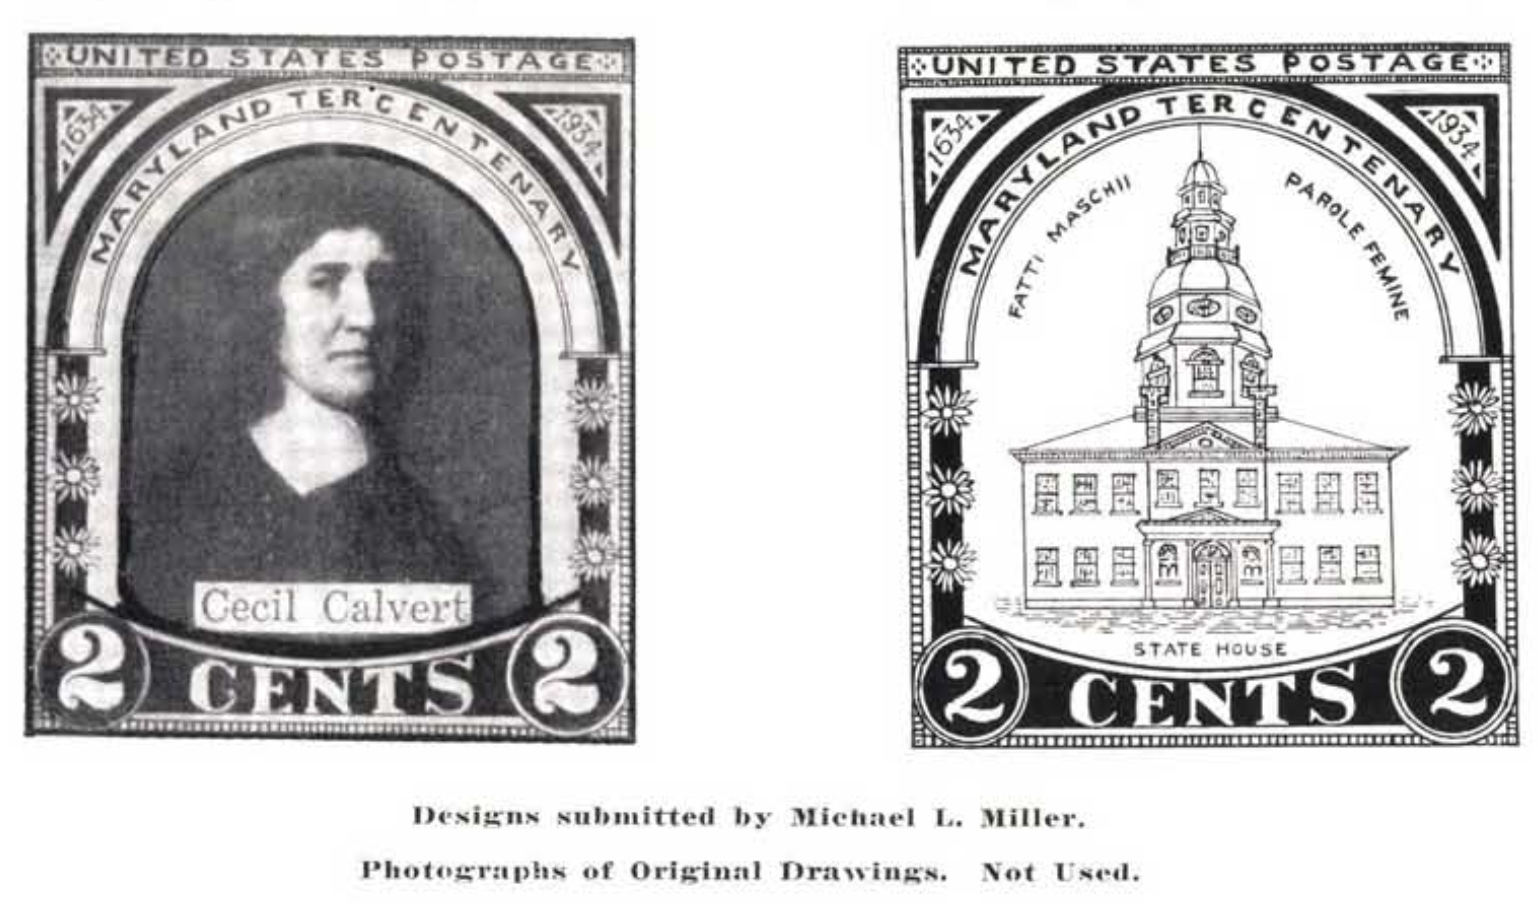 Maryland Tercentenary issue - unused designs submittled by Michael L. Miller